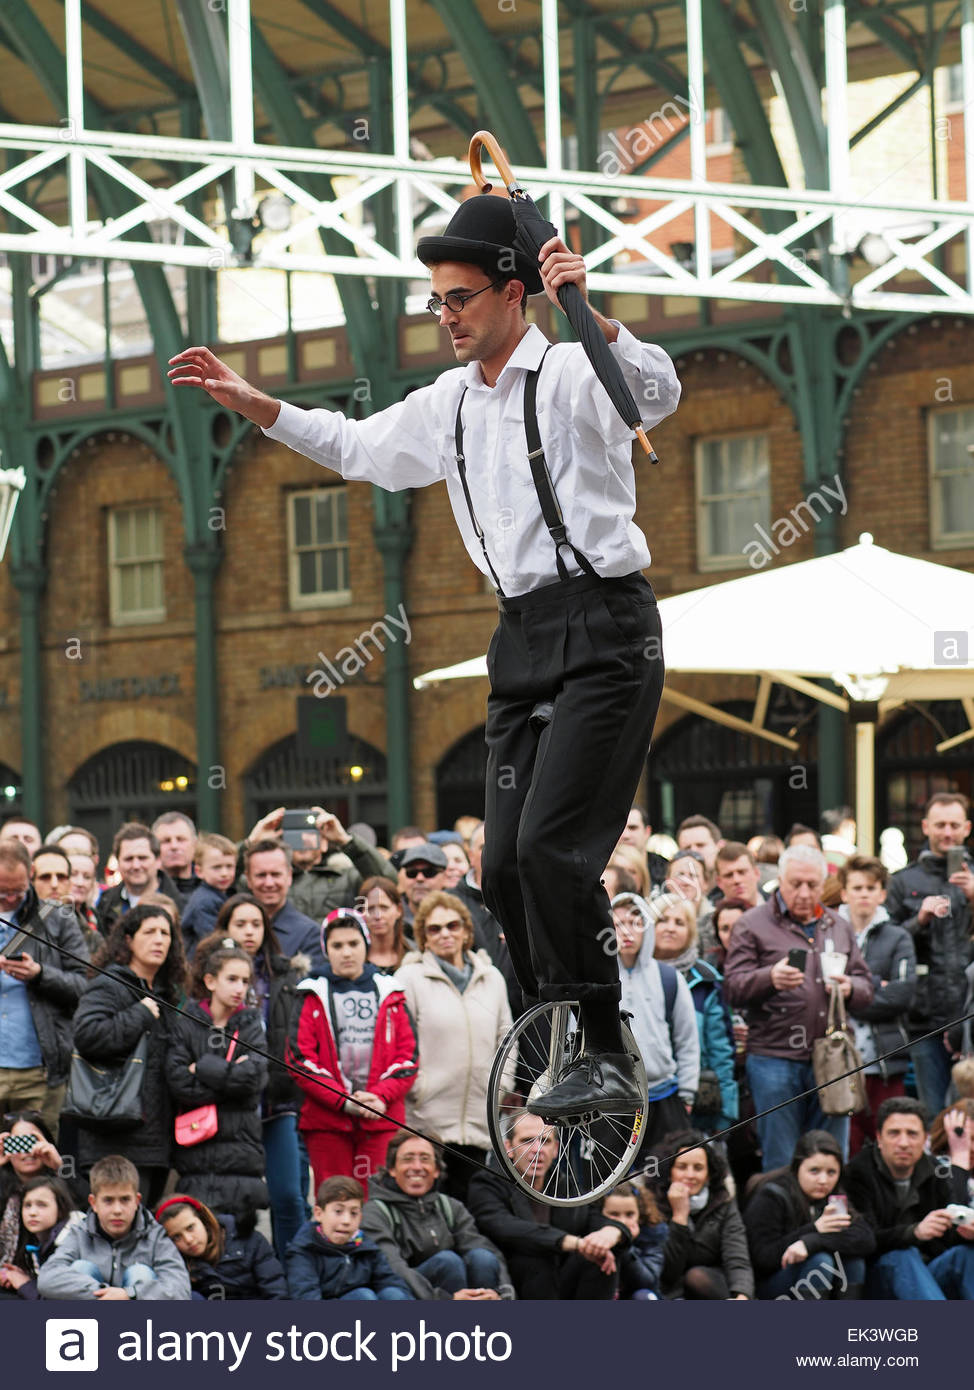 A tightrope walker on a unicycle entertaining a crowd in Covent Garden London UK Stock Photo